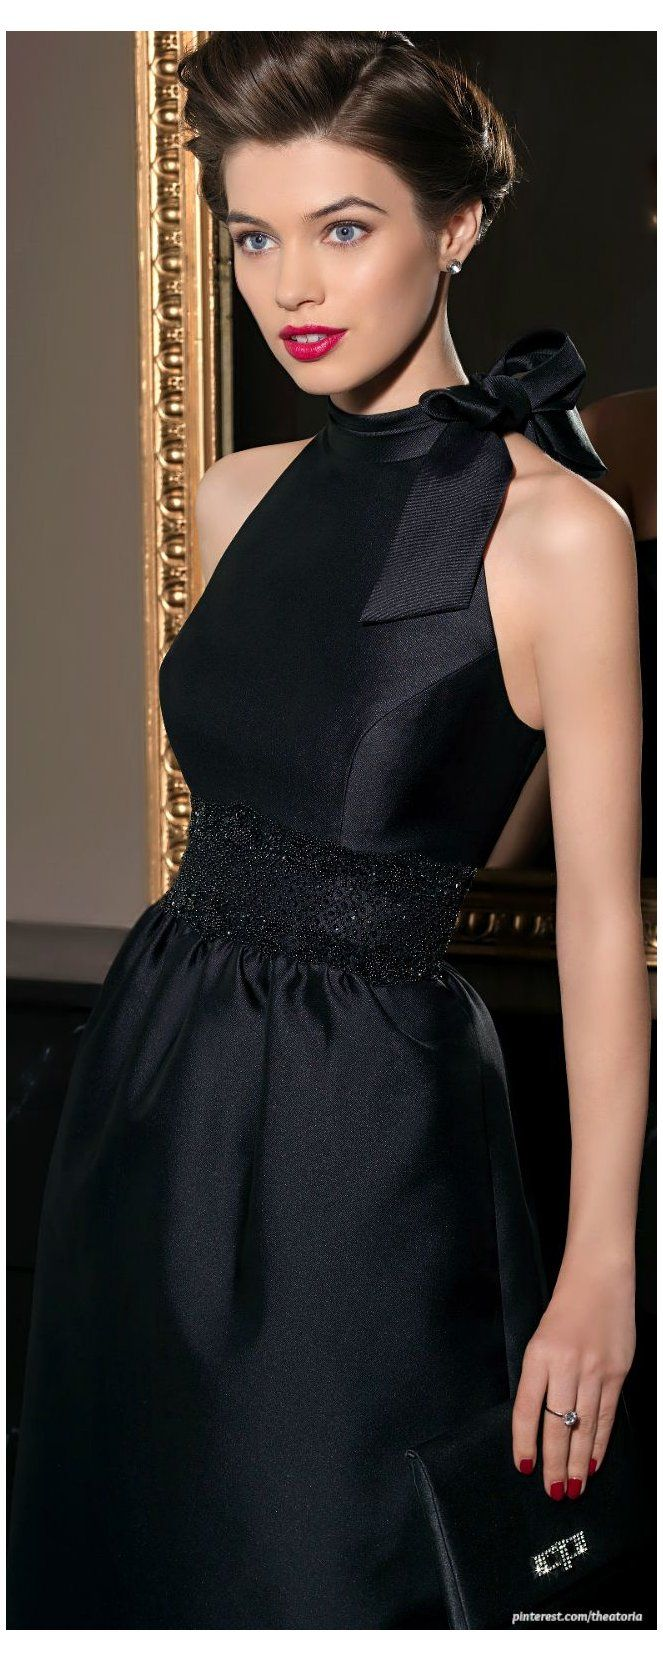 Your Place To Buy And Sell All Things Handmade Classic Black Cocktail Dress Classicblackcocktaildress Cocktail Little Black Dress Black Dress Classy Dress [ 1661 x 663 Pixel ]